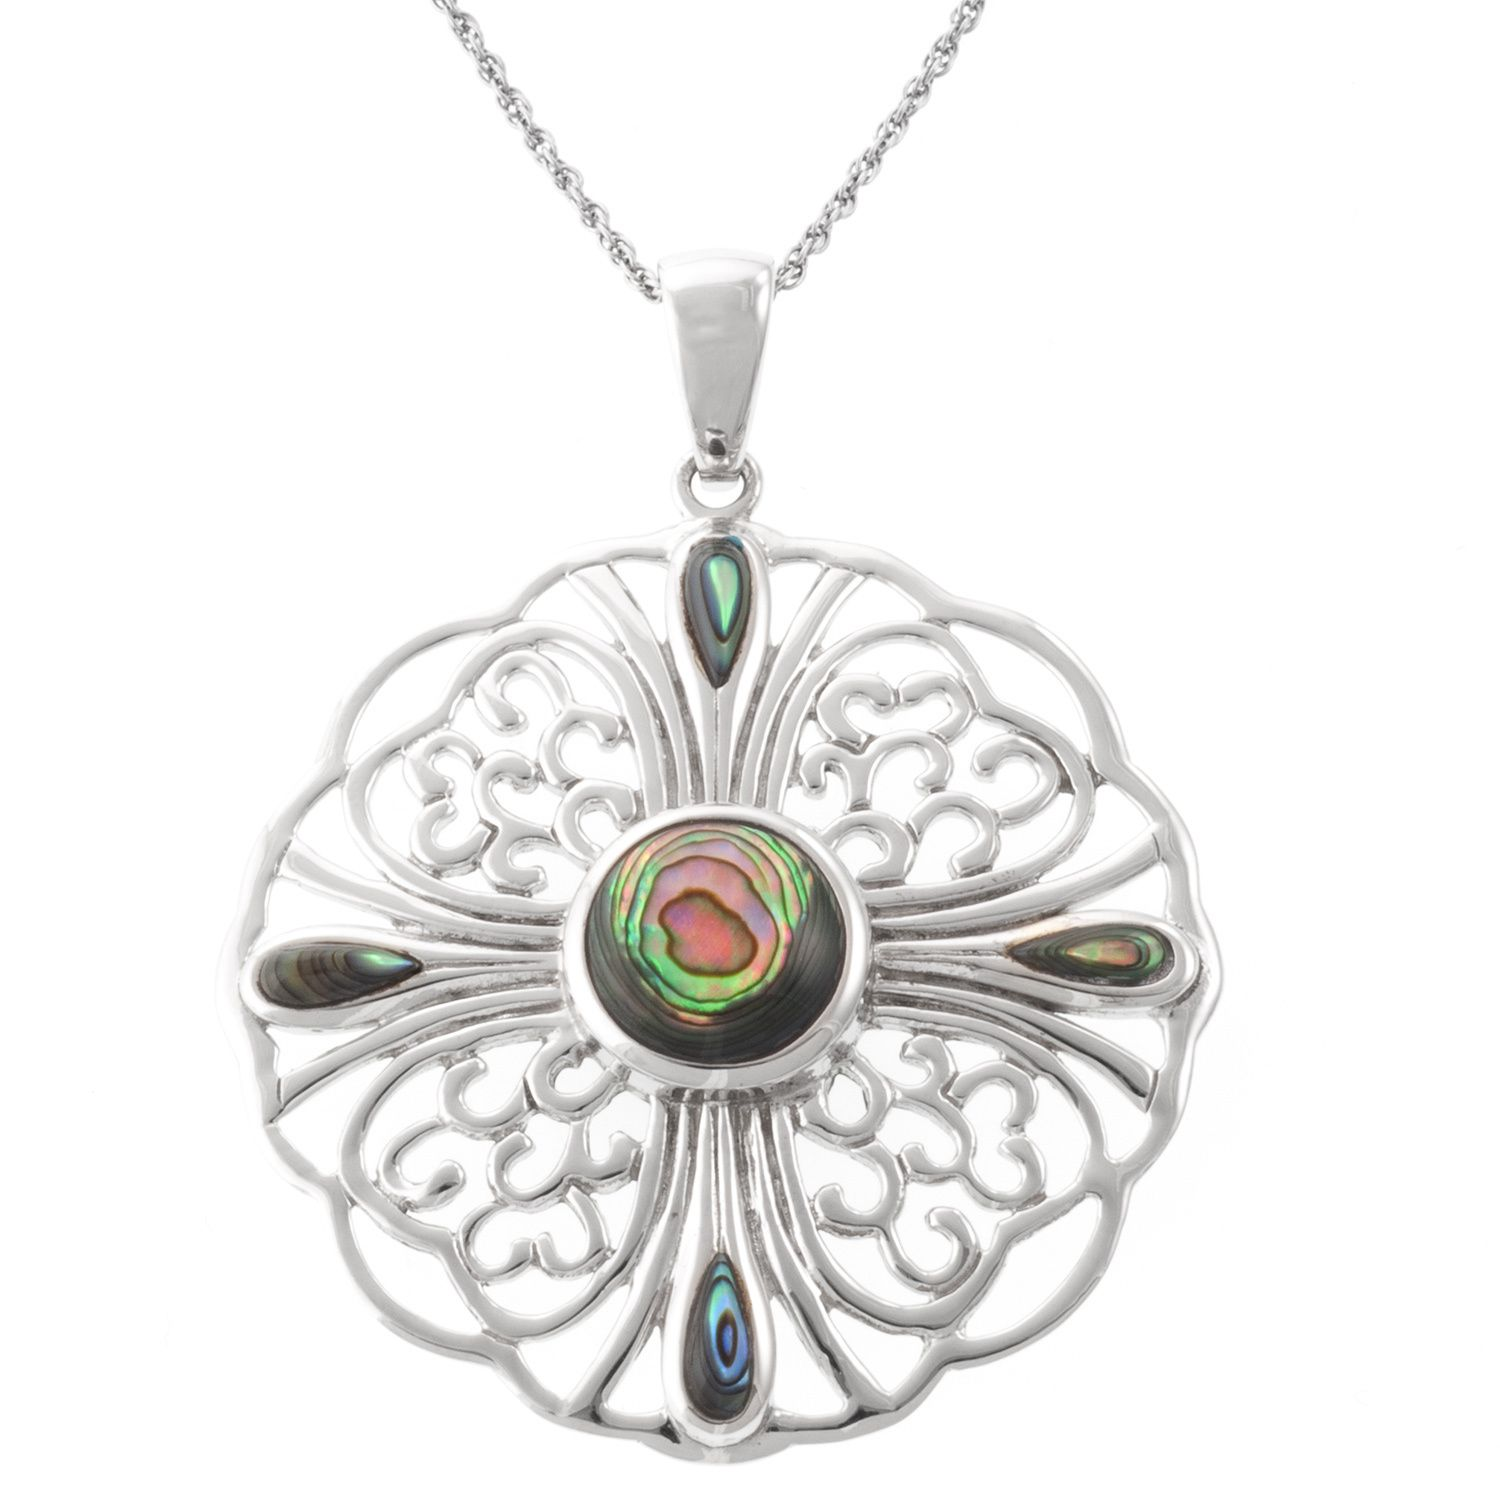 Athra luxe collection sterling silver filigree motif flower pendant